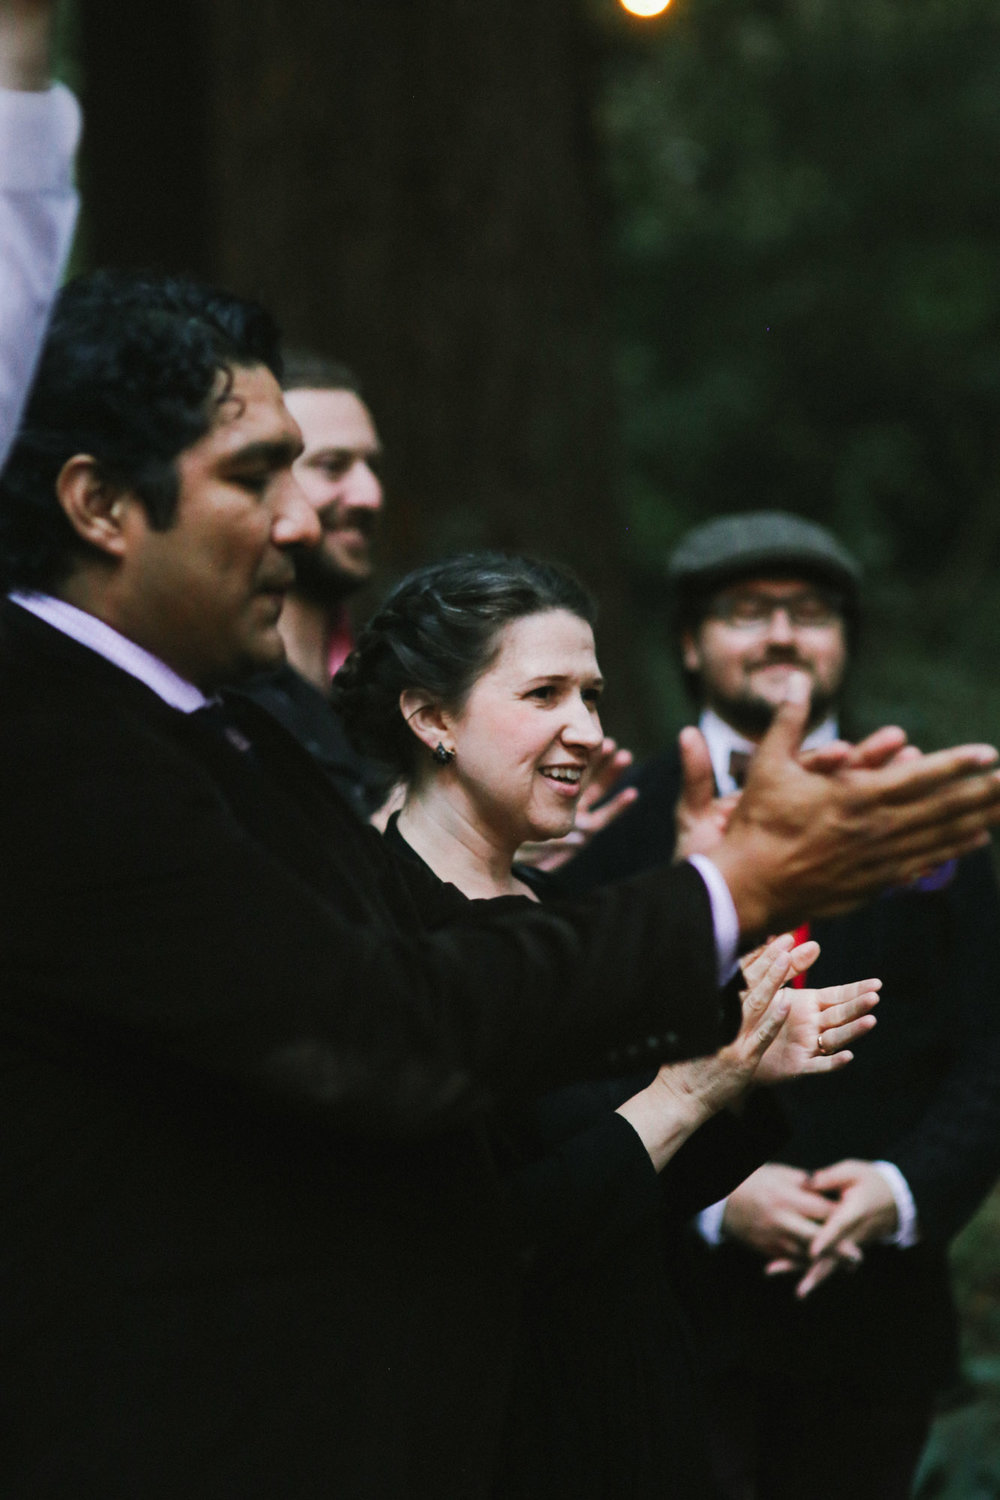 Wedding_Trocadero_house_Stern Grove_offbeat_San_Francisco-62.jpg